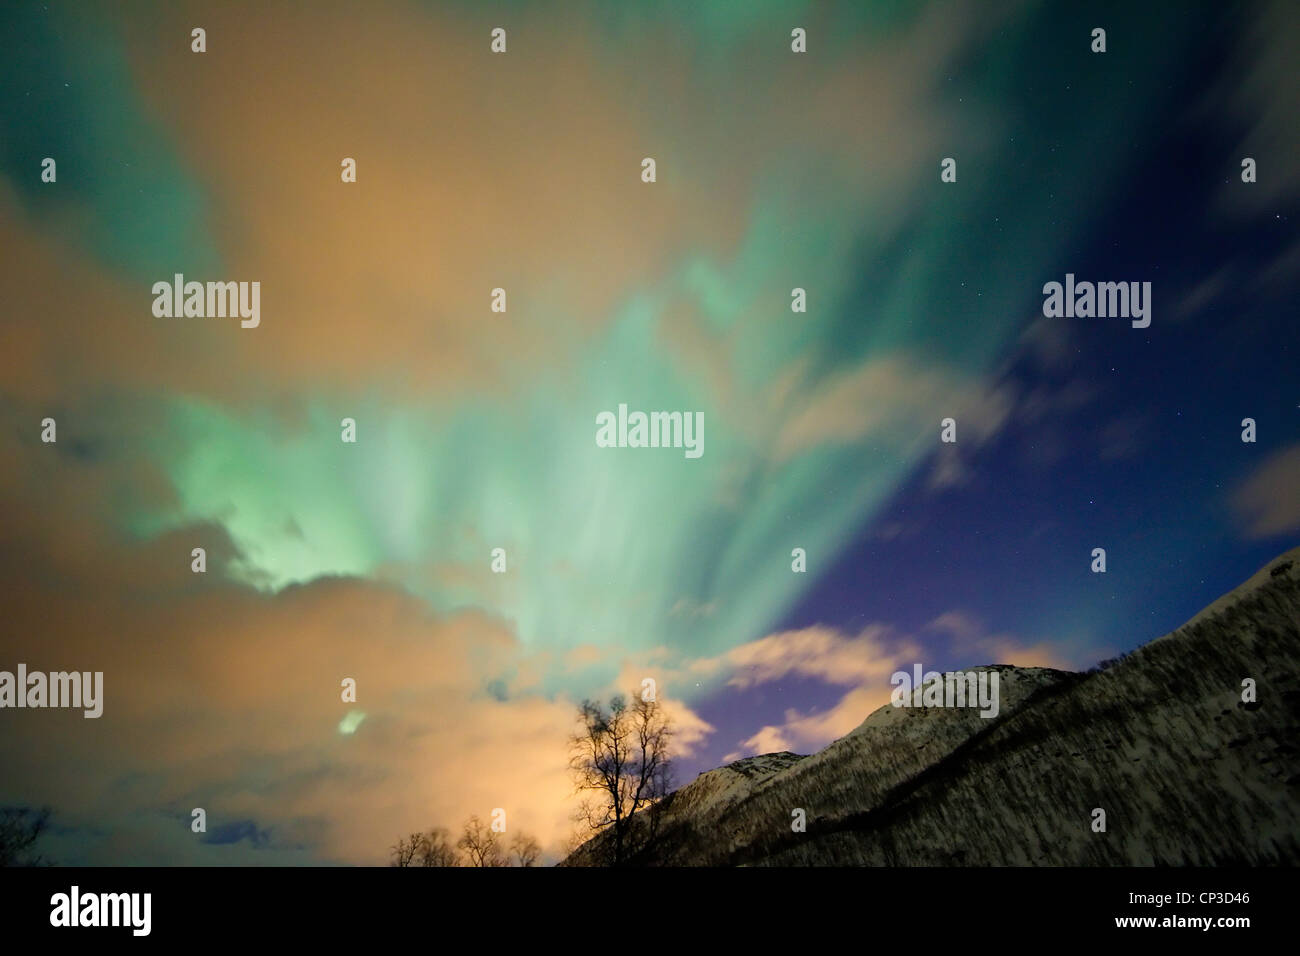 Aurora borealis or northern lights moving across night sky within the Arctic Circle Tromso Troms  region norway - Stock Image